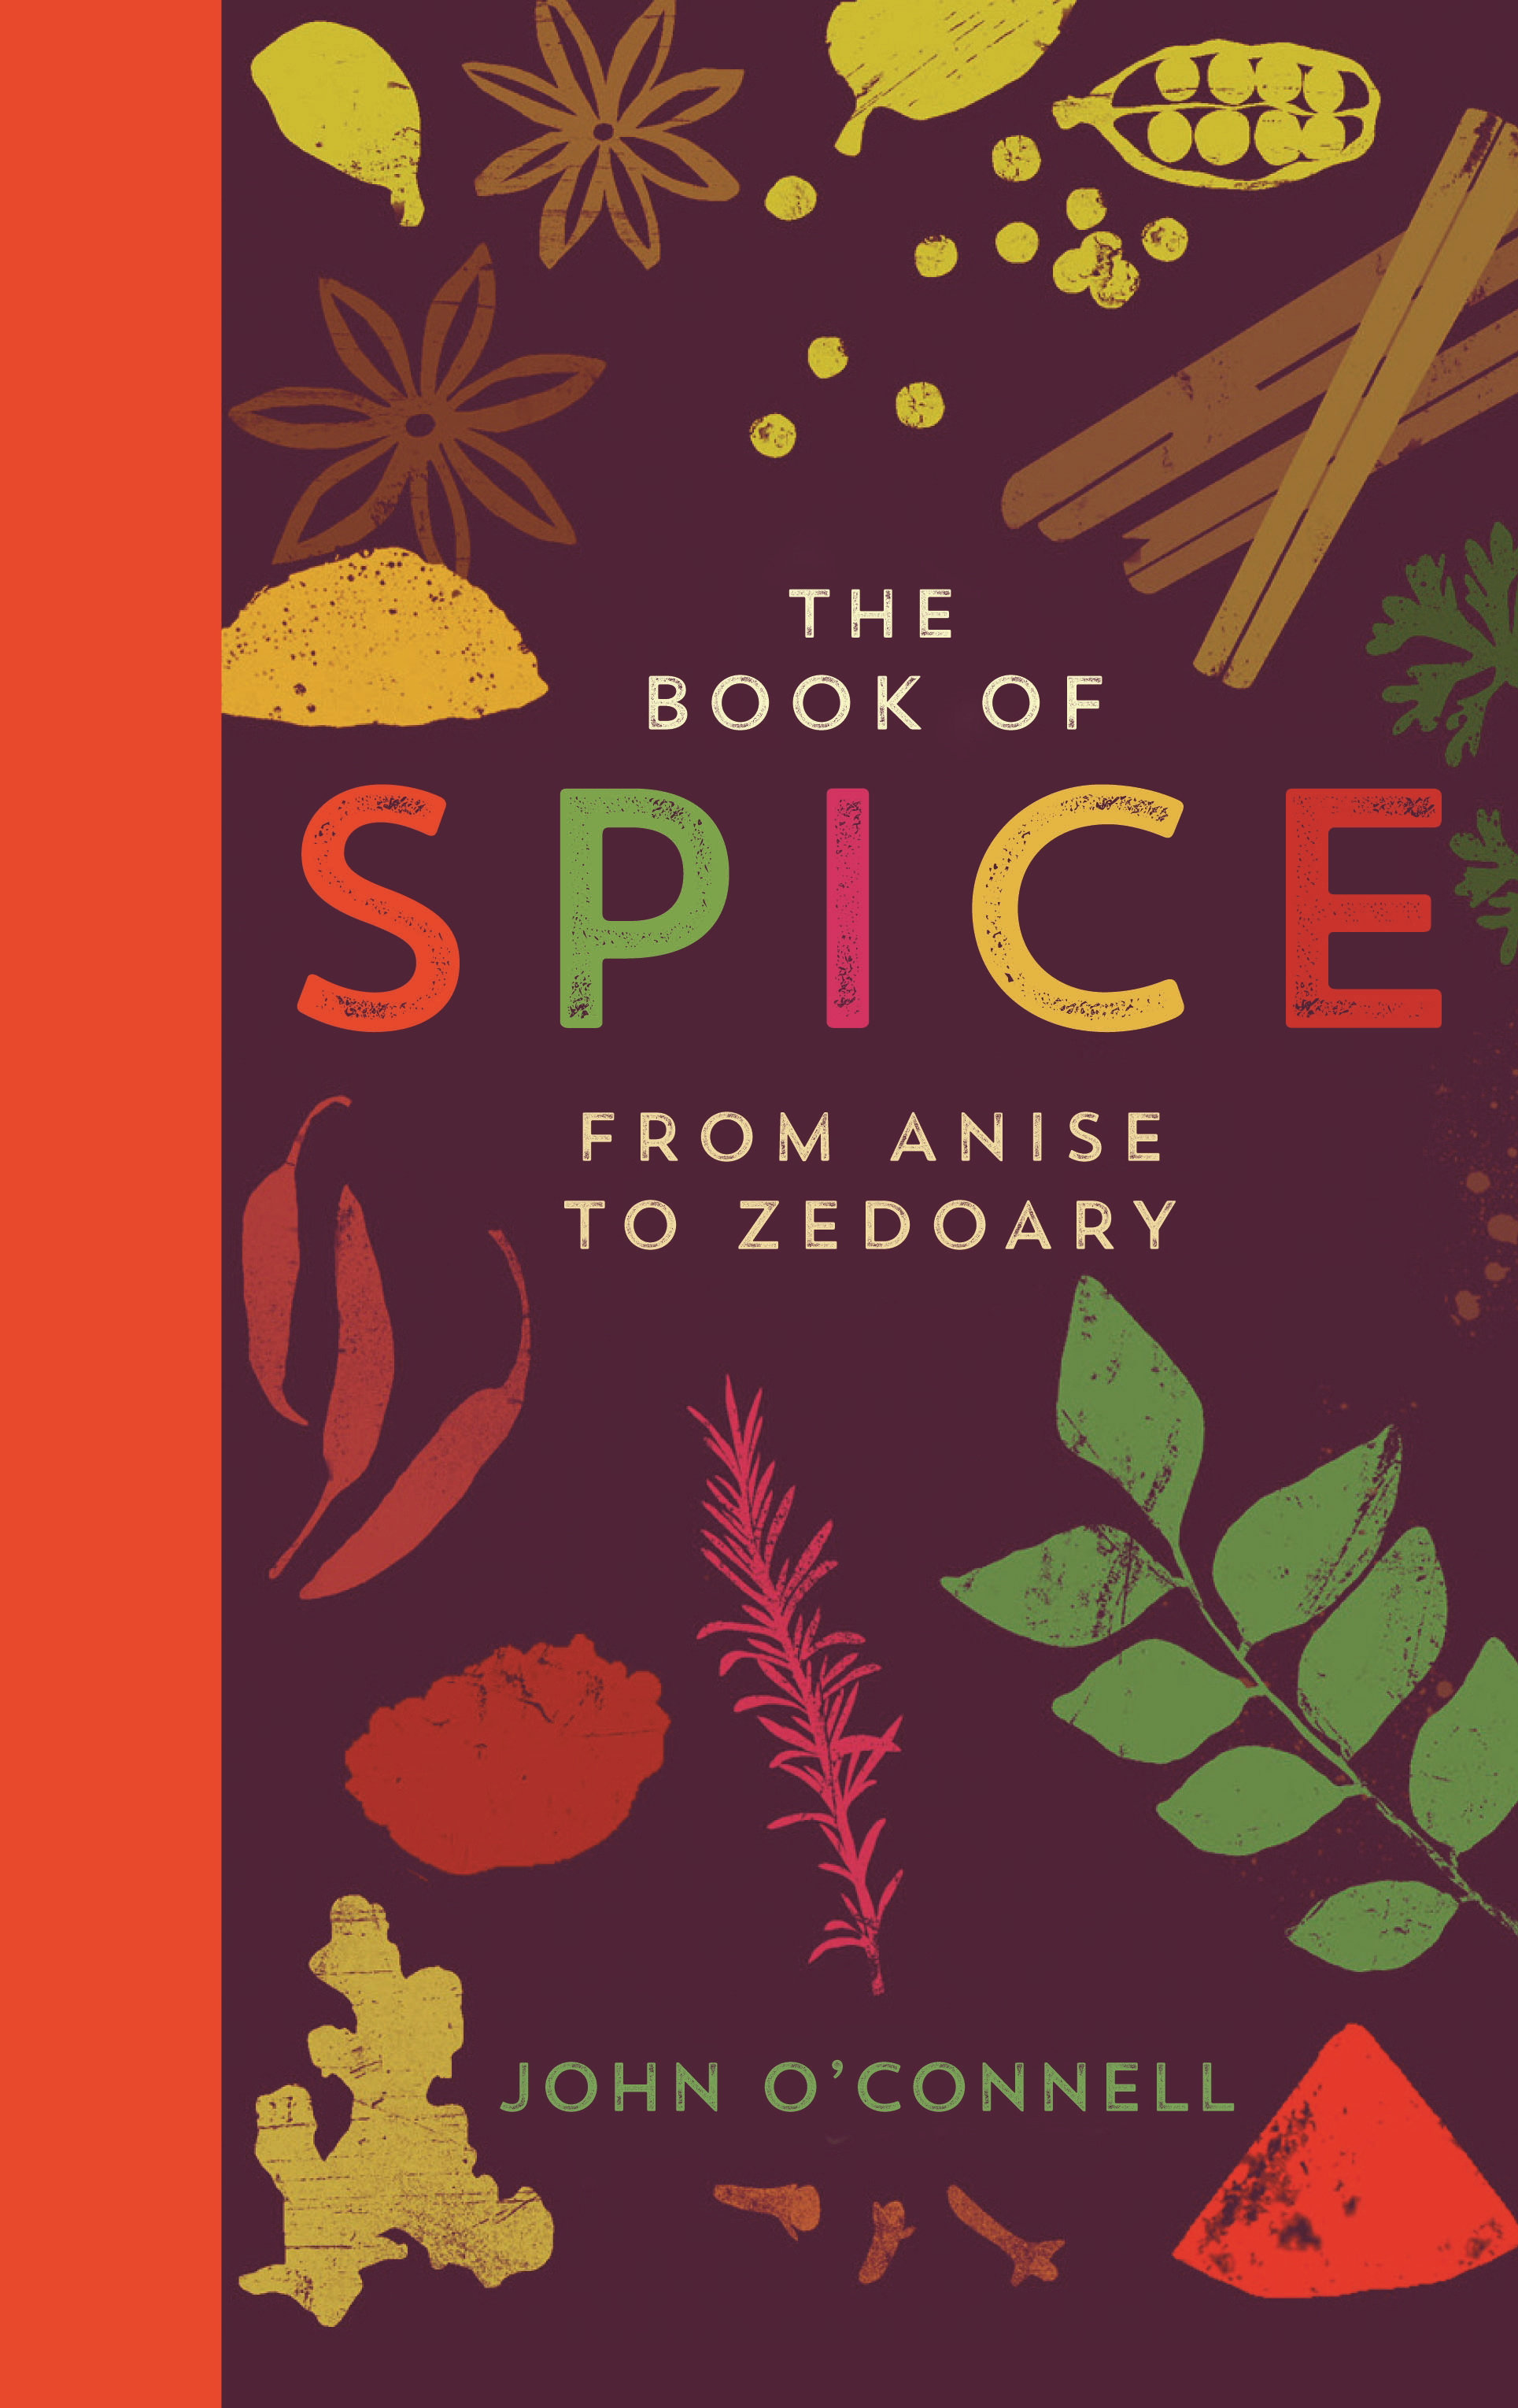 The Book of SpiceFrom Anise to Zedoary by John O'Connell, ISBN: 9781781253045